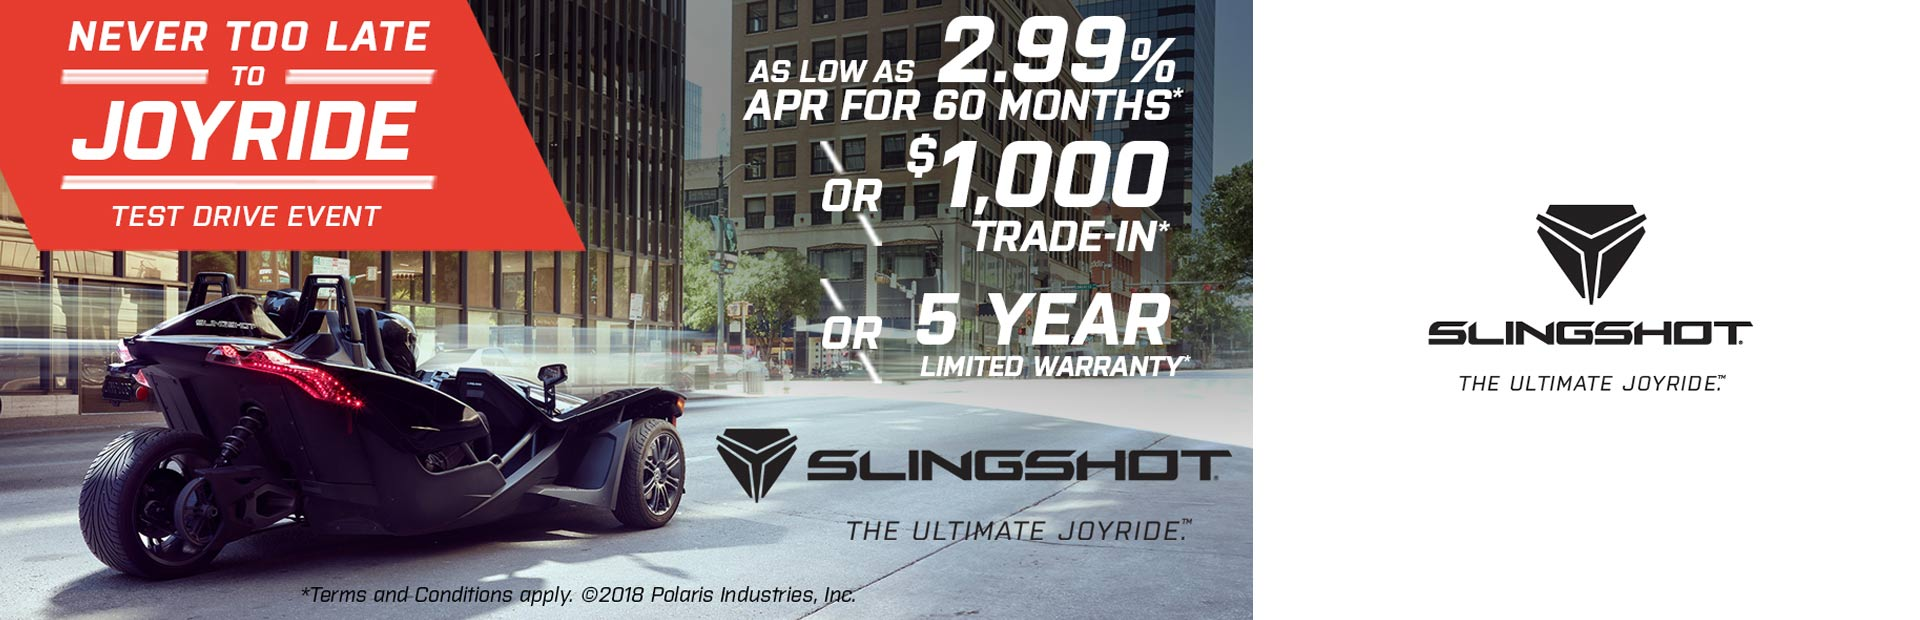 Slingshot: Never Too Late To Joyride - Test Drive Event